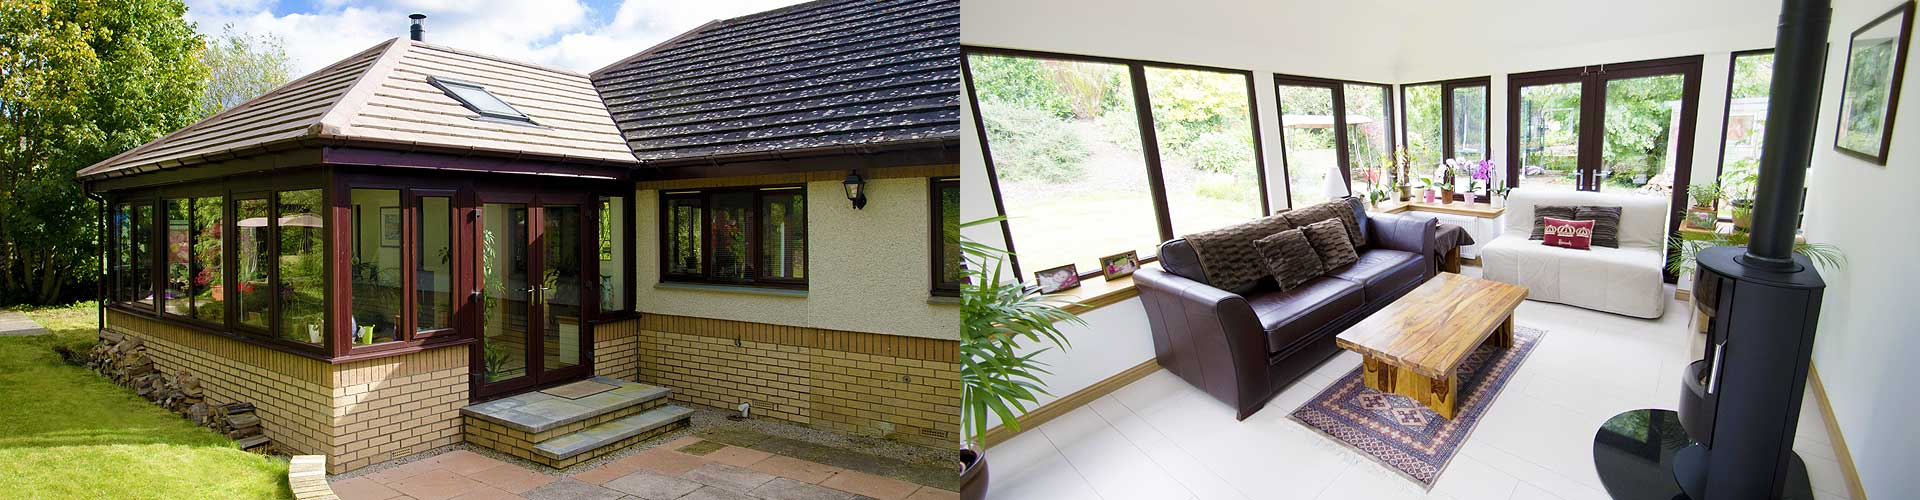 Thistle Home Extensions Aberdeen & Aberdeenshire: Sunrooms